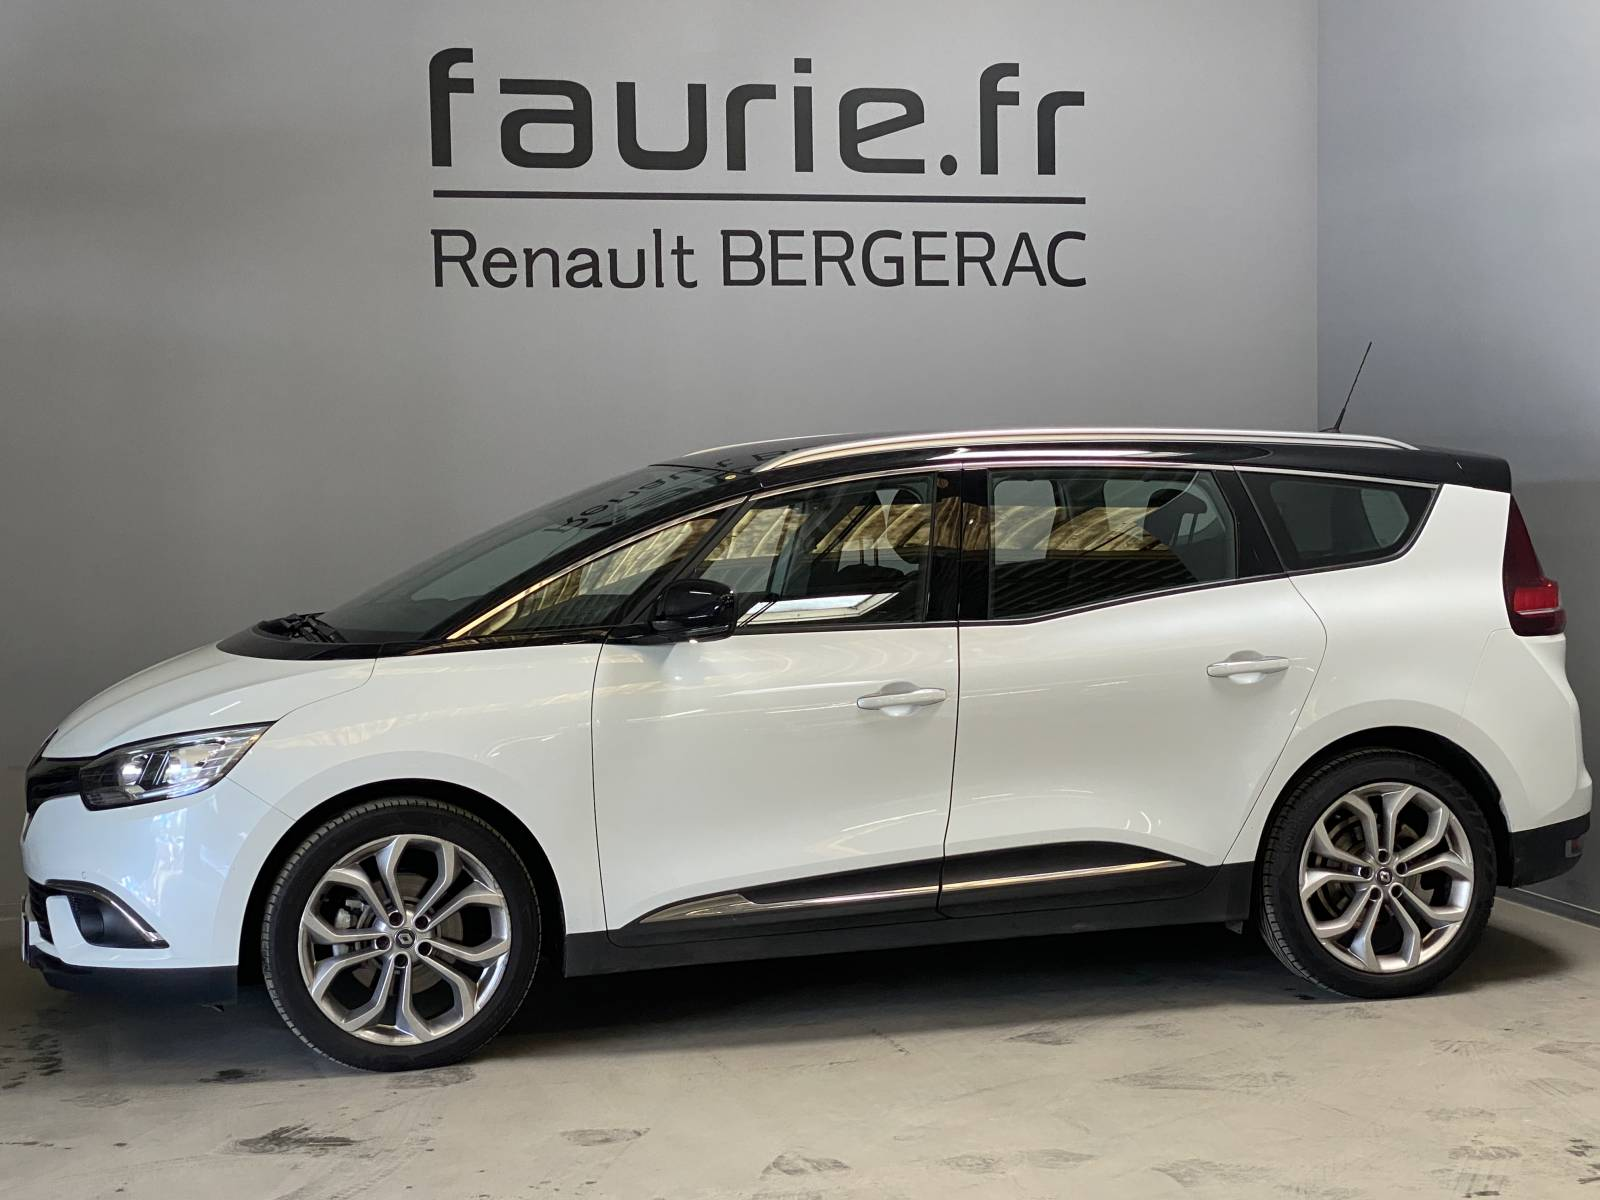 RENAULT Grand Scénic dCi 110 Energy EDC - véhicule d'occasion - Site Internet Faurie - Renault - Faurie Auto Bergerac - 24100 - Bergerac - 9